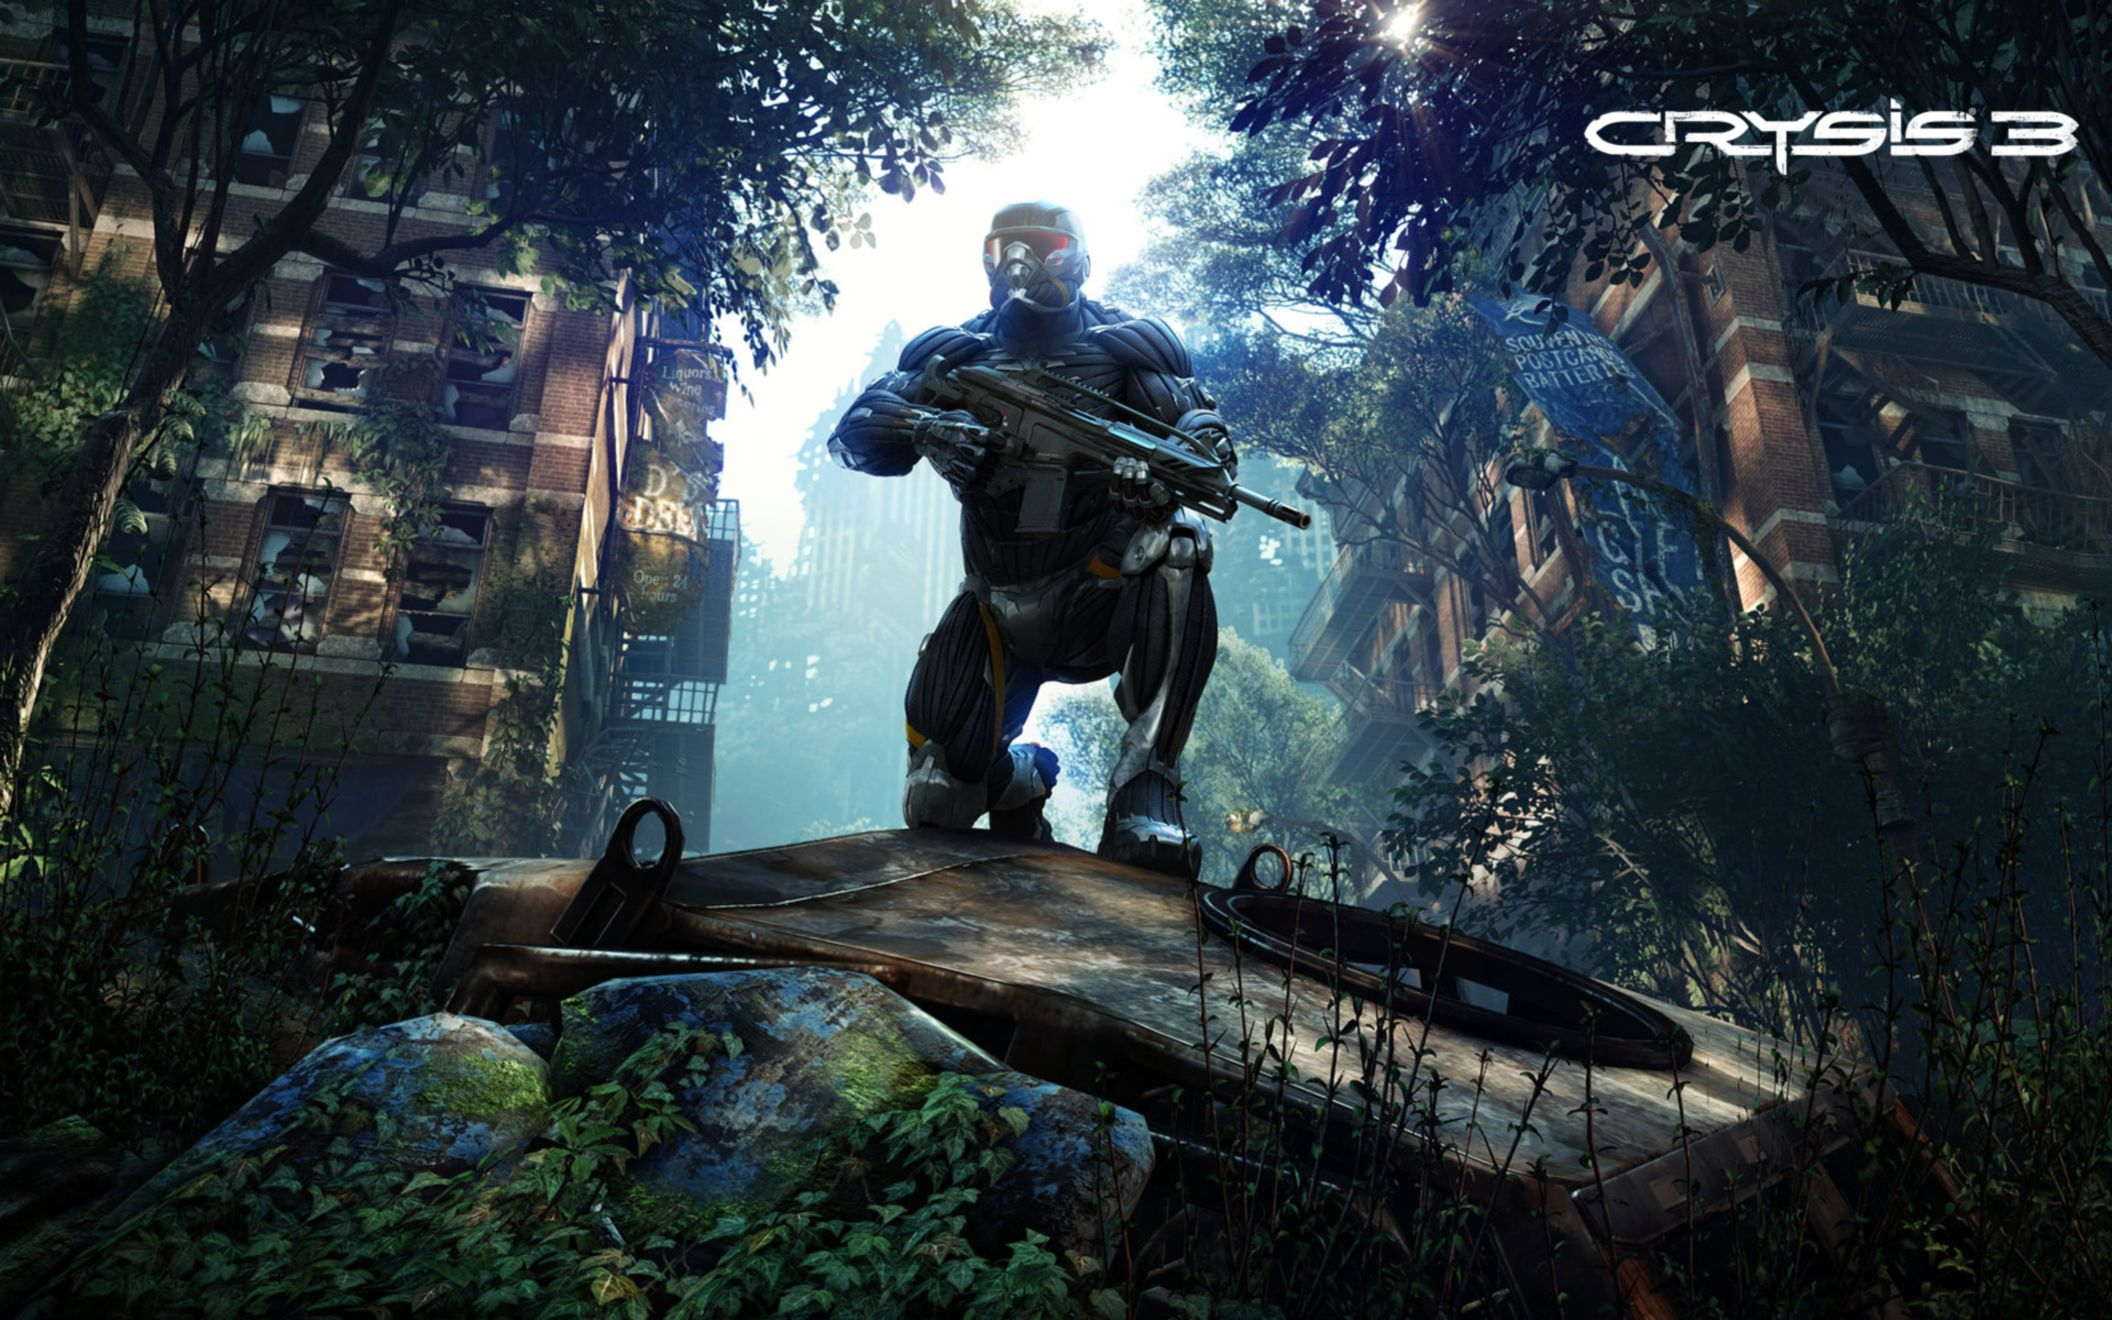 Download free HD Crysis 3 New 2013 Wide Wallpaper, image